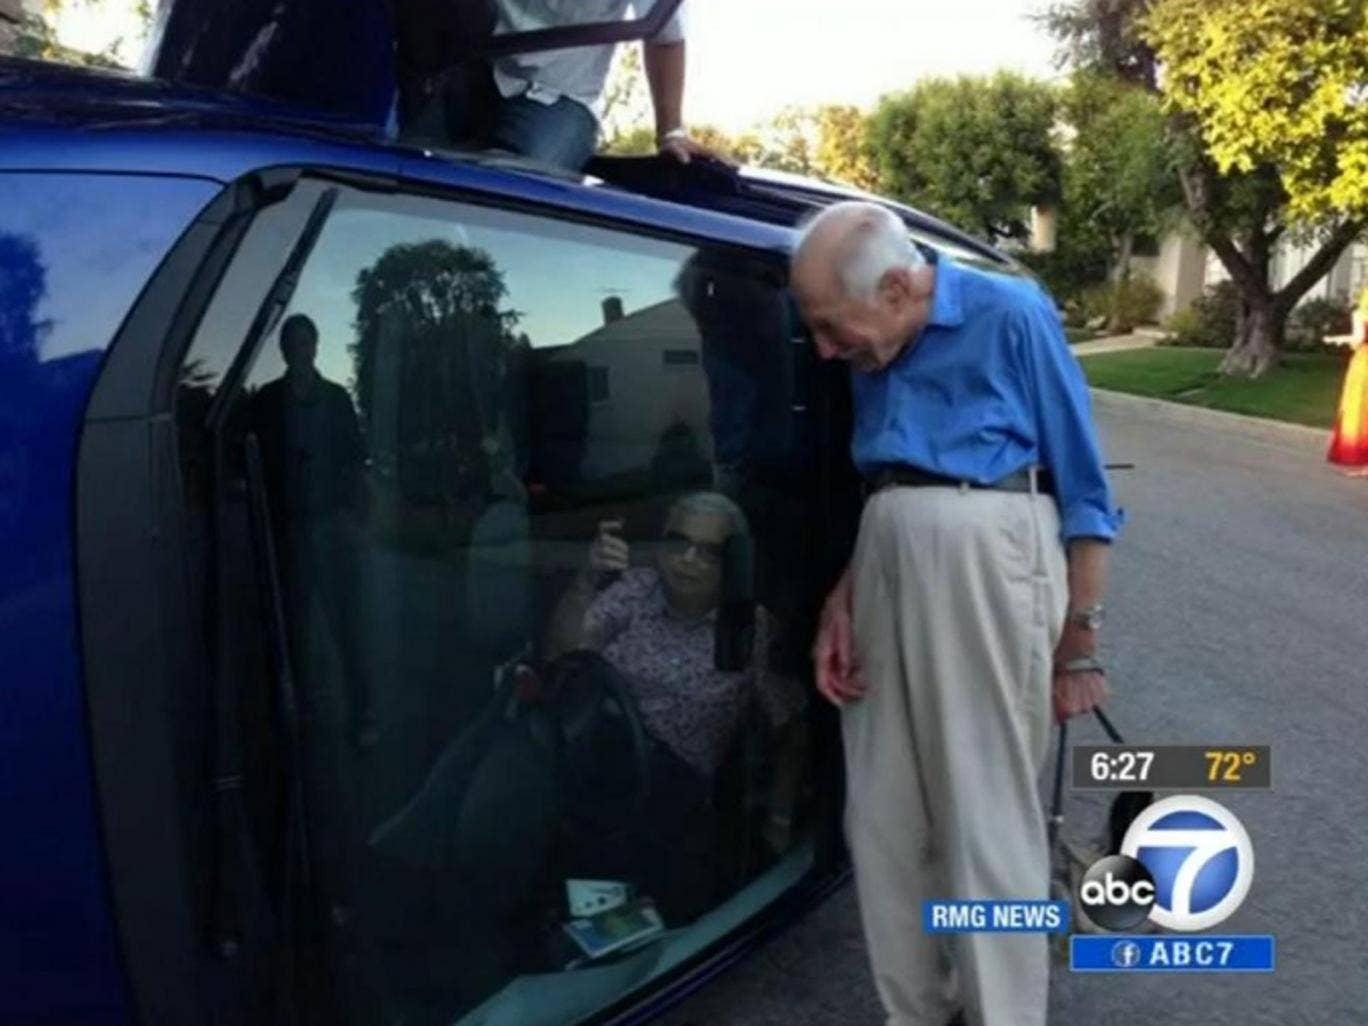 Benjamin Neufeld stood at the side of the car for pictures while his wife Elizabeth Neufeld asked for her purse so she could take pictures of herself while still trapped inside the car.